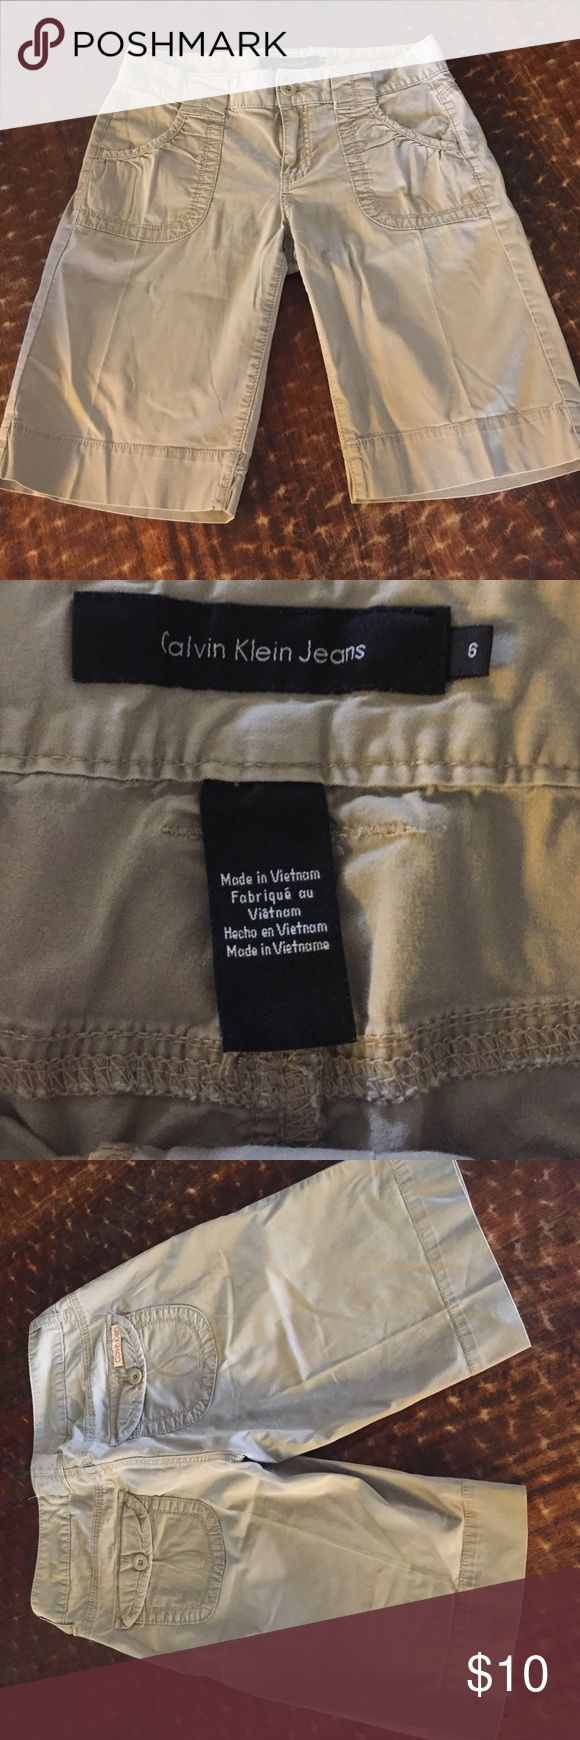 Calvin Klein shorts, size 6, good condition Calvin Klein Bermuda shorts, size 6, good condition Calvin Klein Jeans Shorts Bermudas